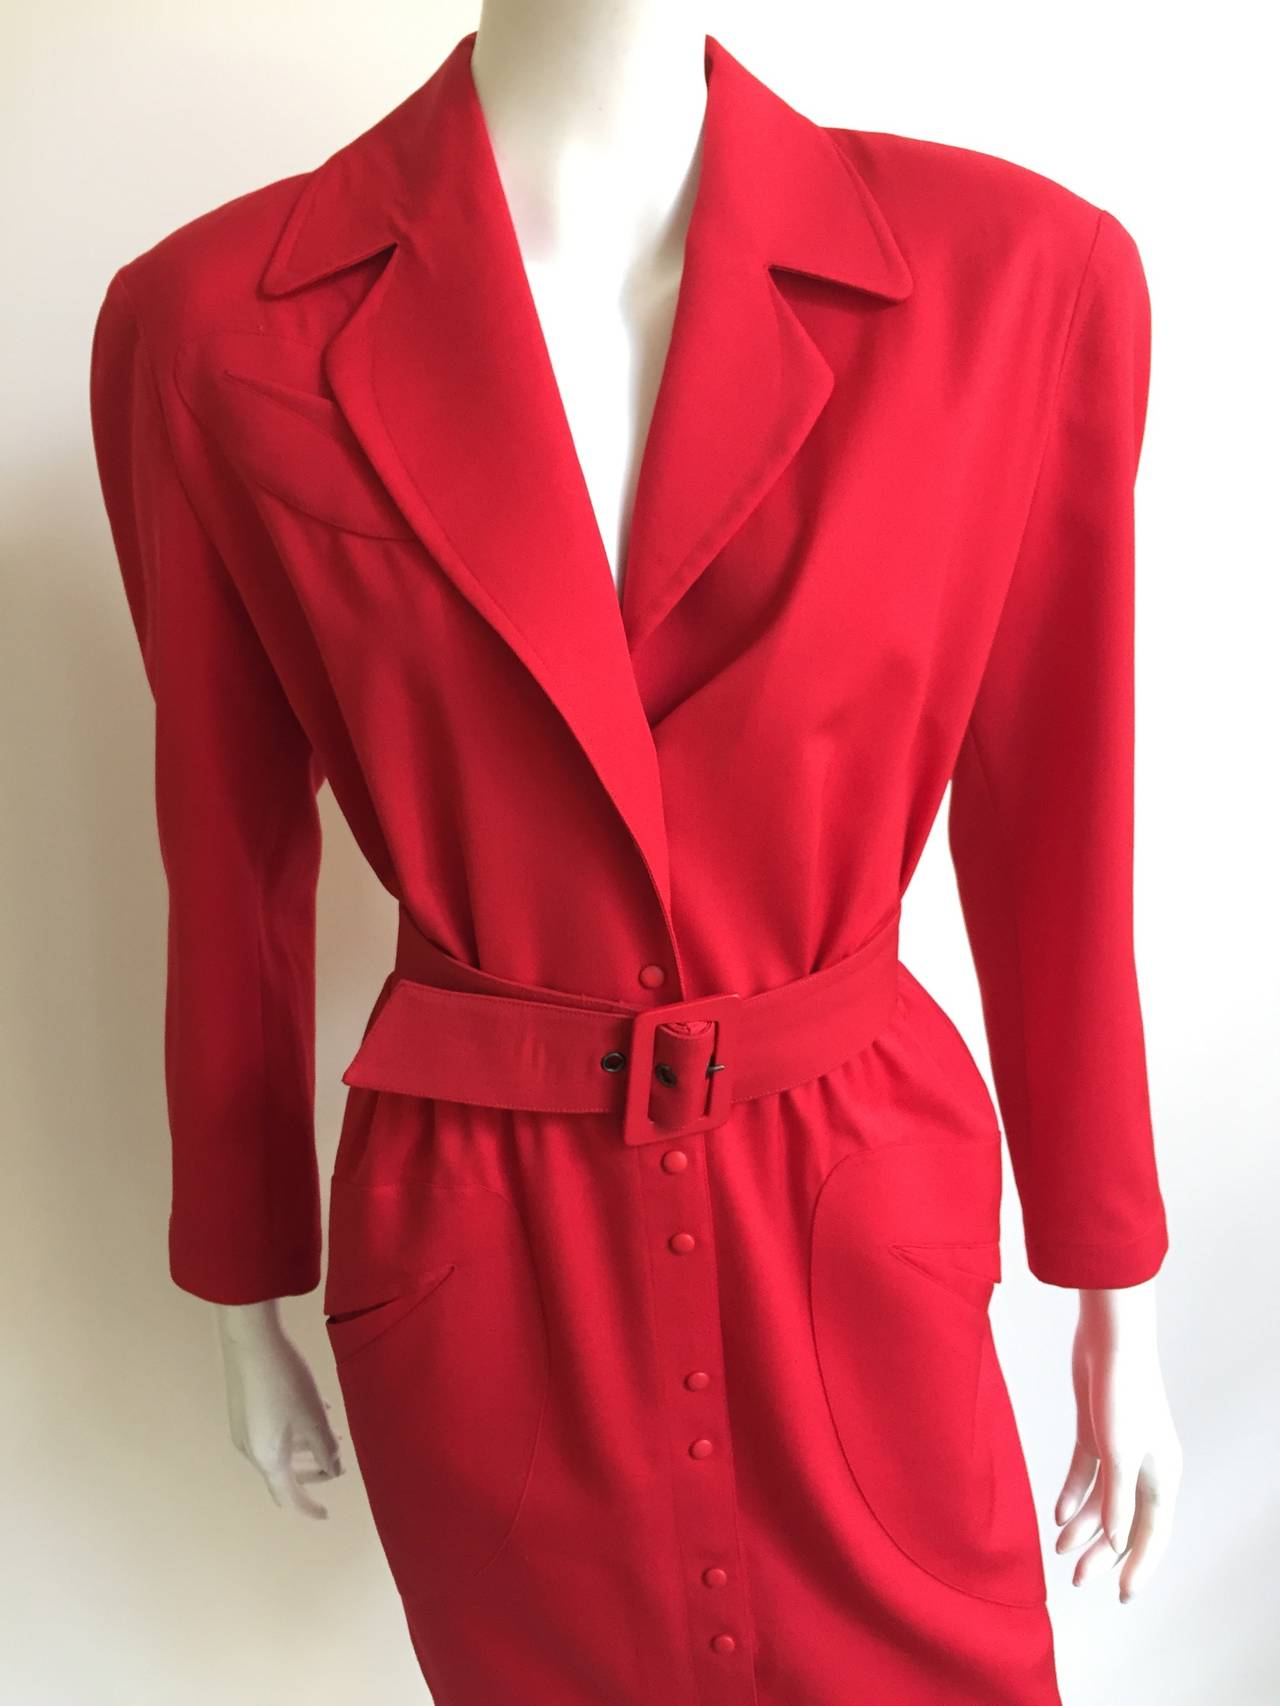 Thierry Mugler 80s Dress With Pockets Size 6. 2